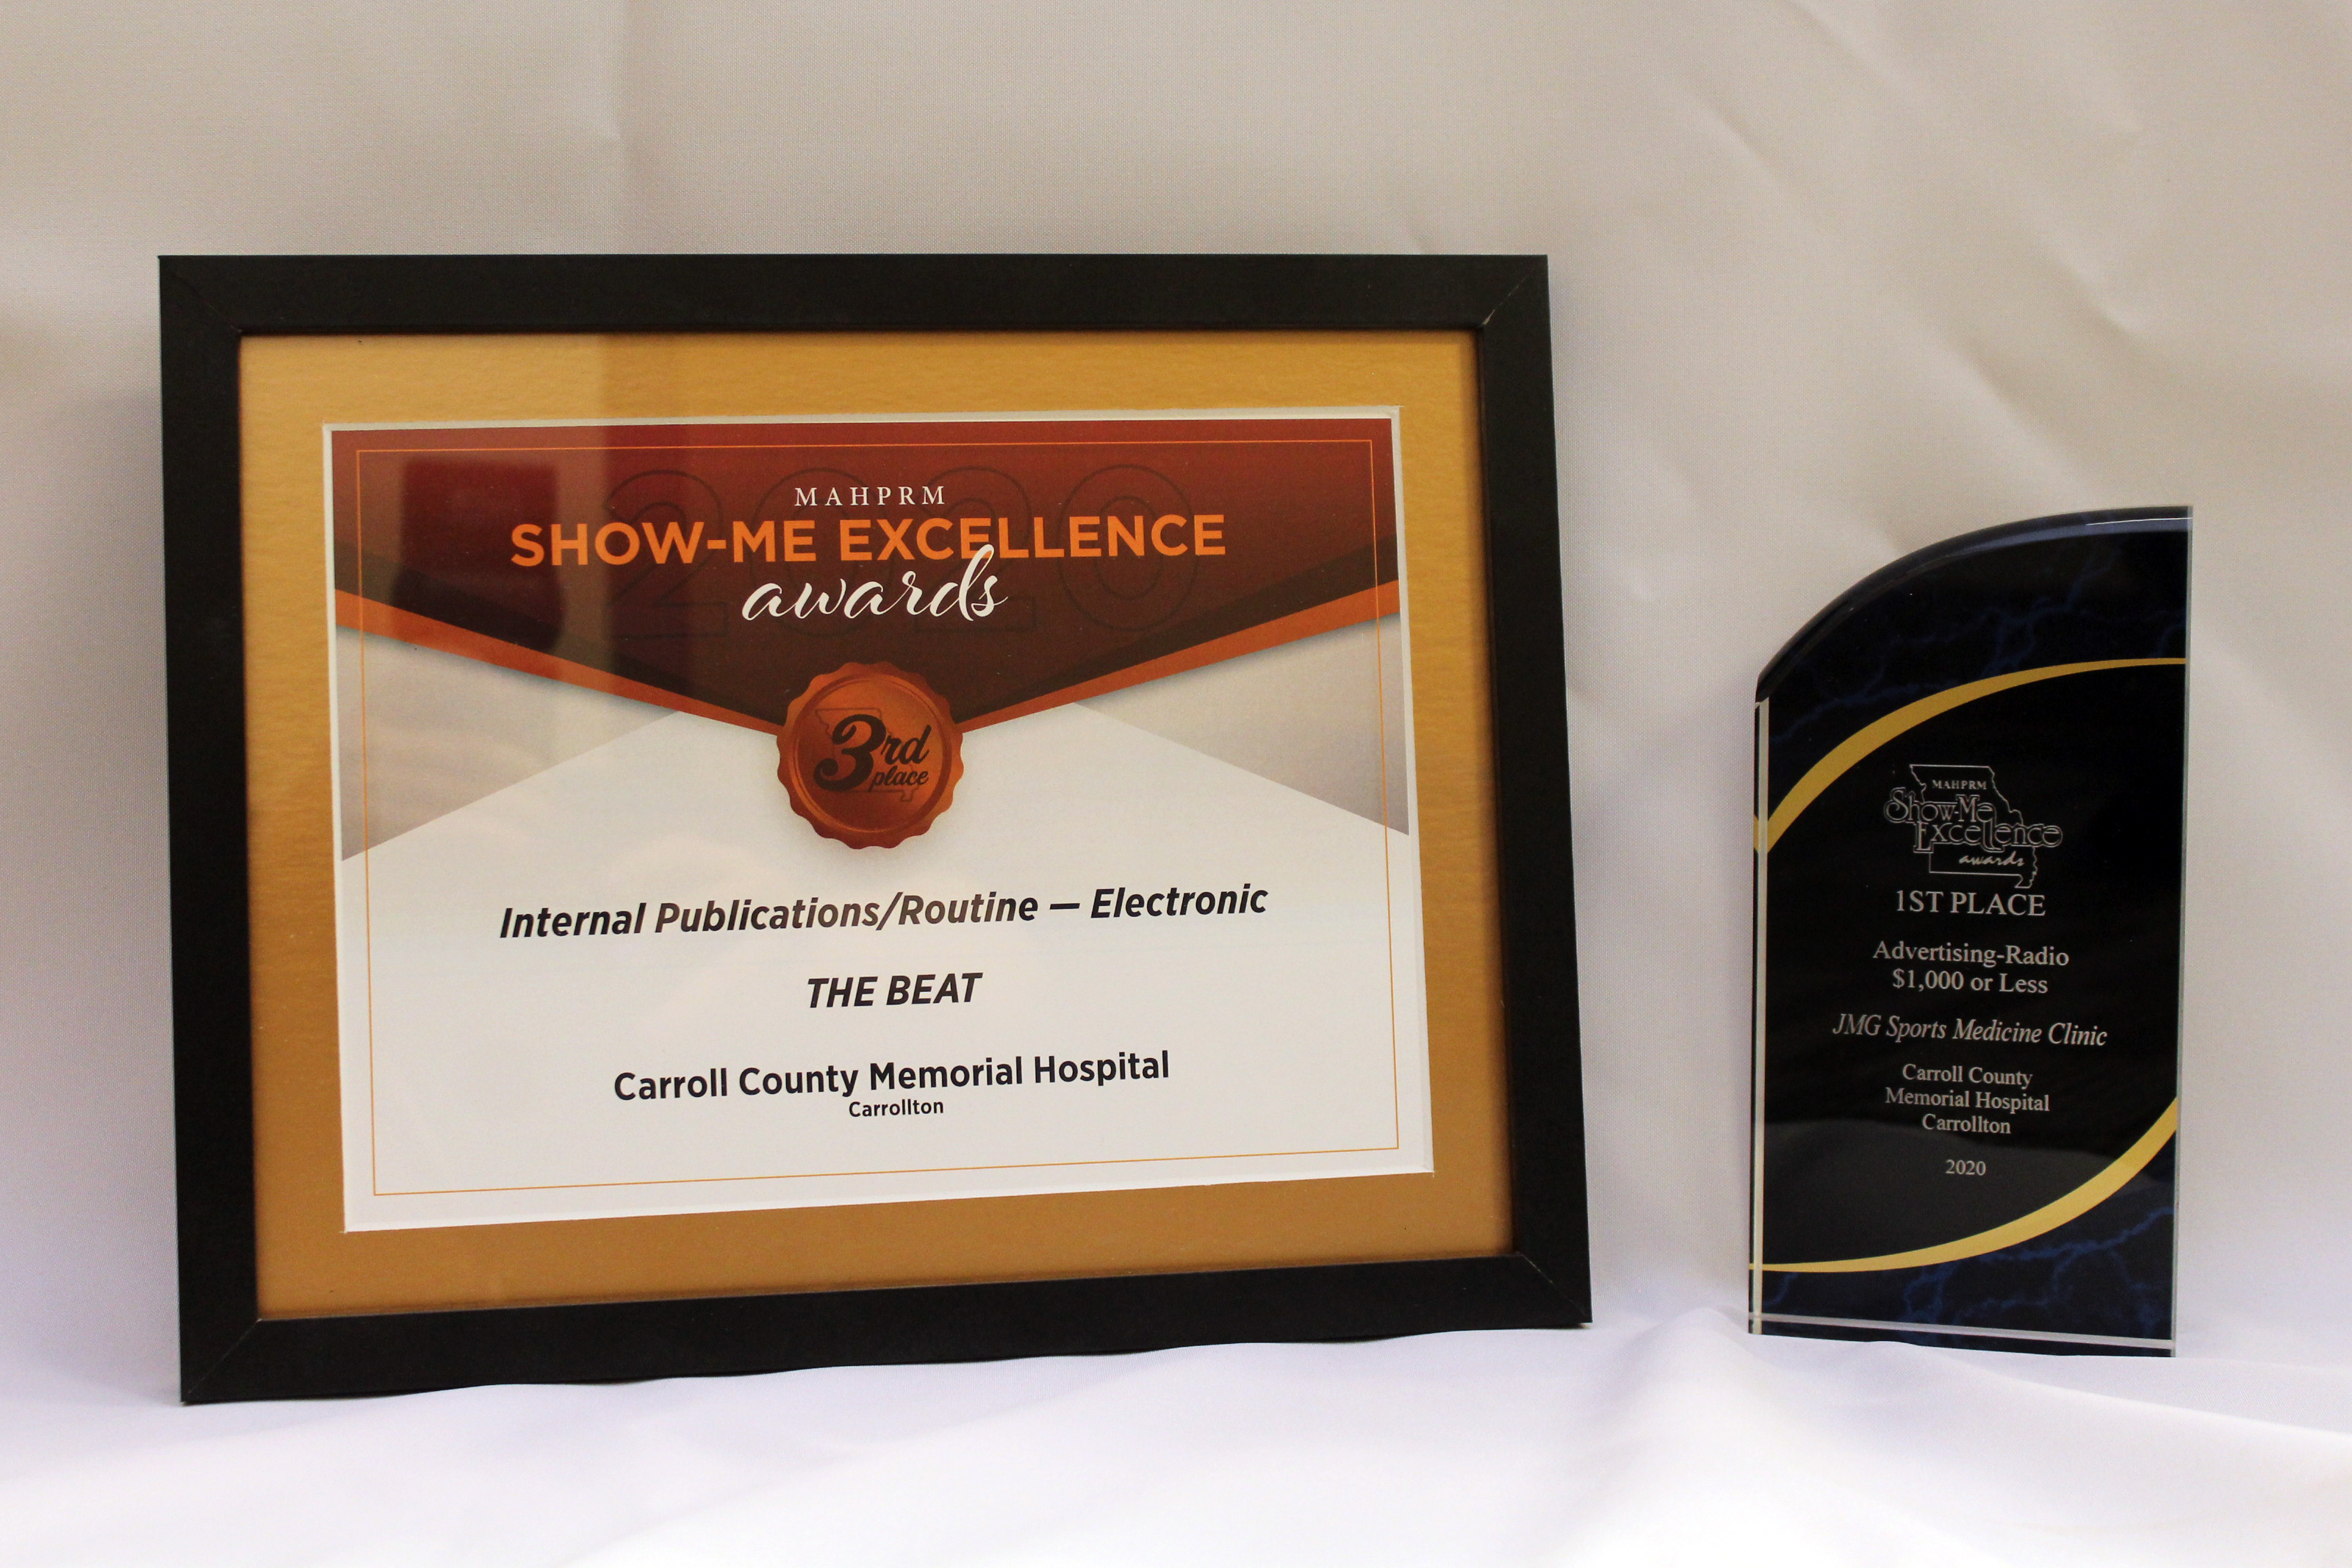 CCMH Recognized as Show-Me Excellence Award Winners